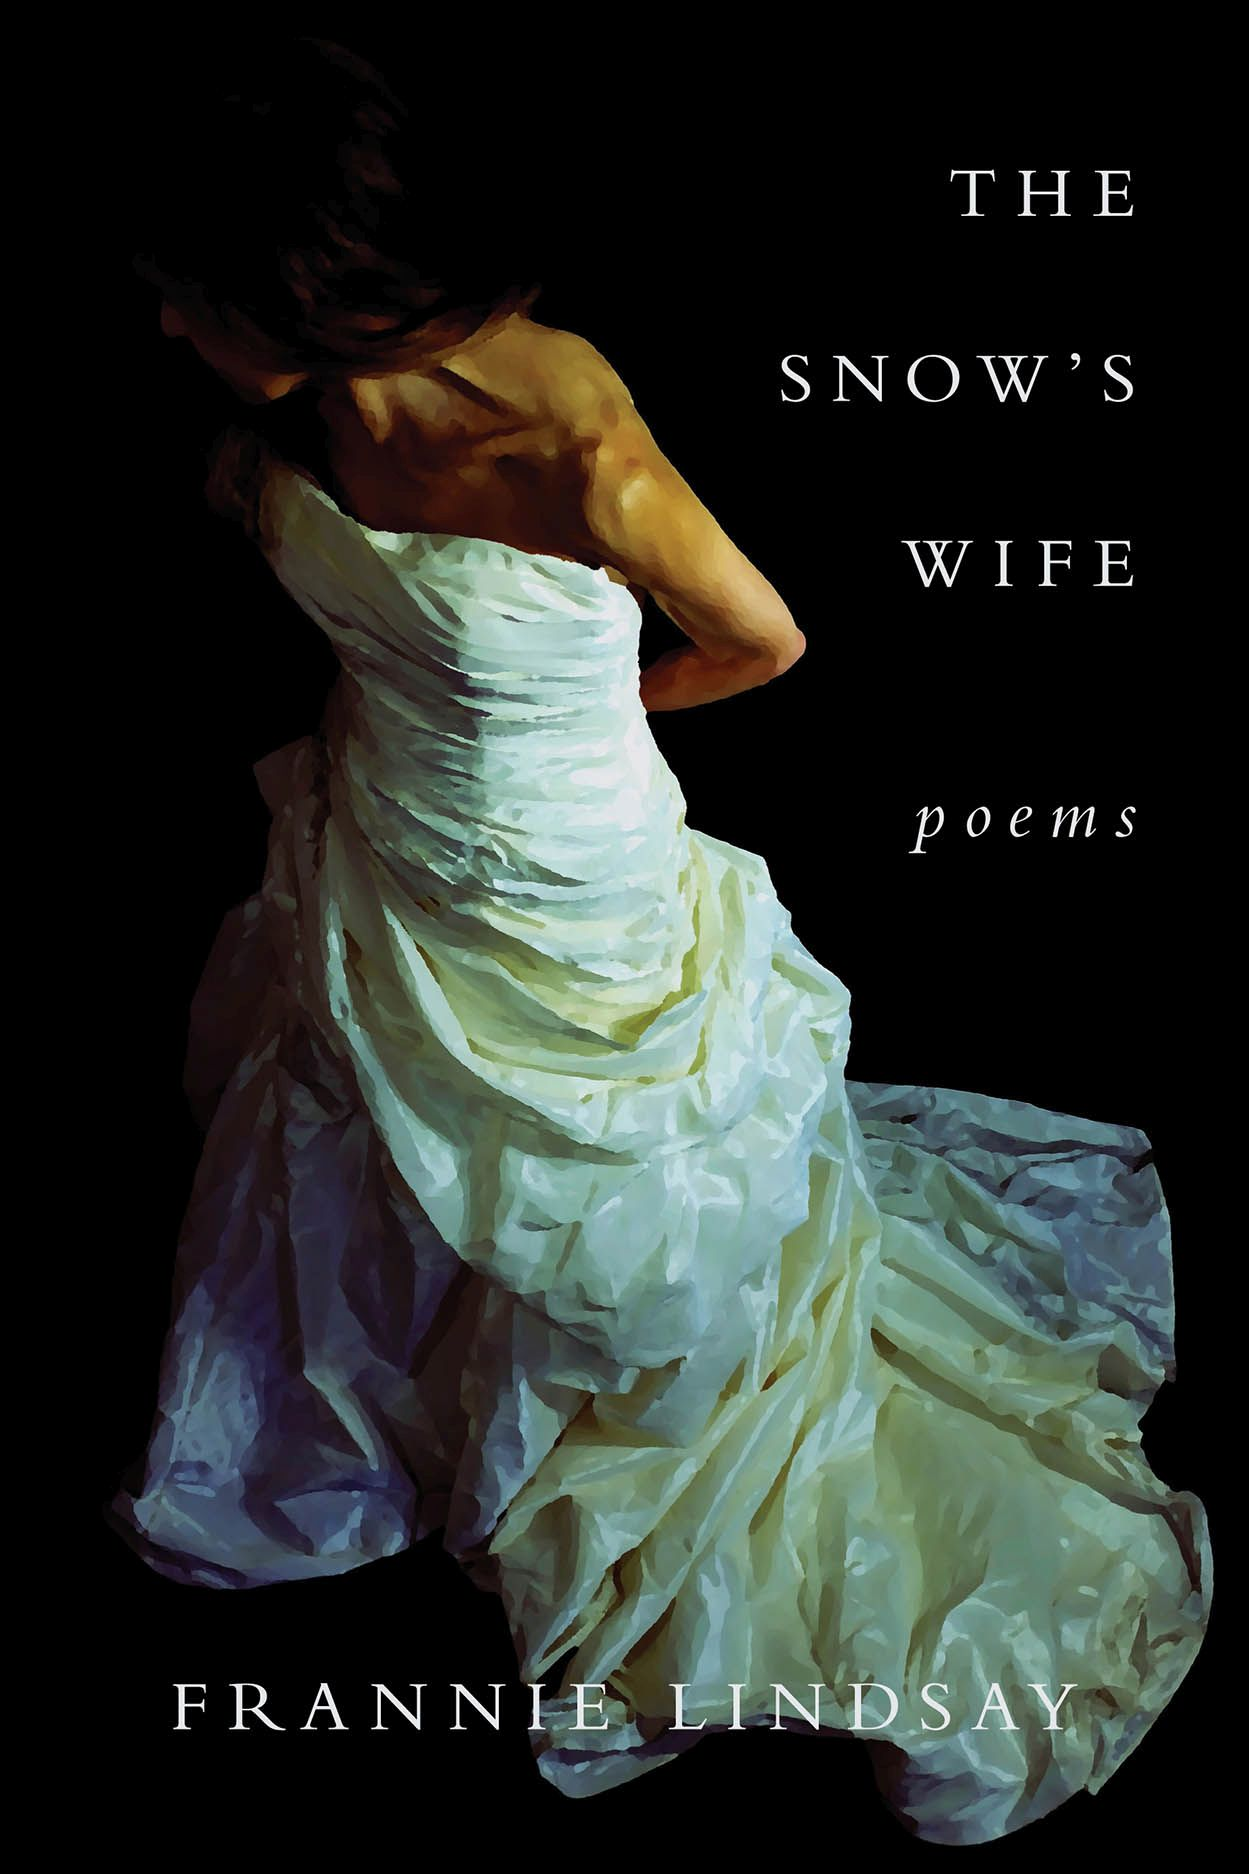 The Snow's Wife